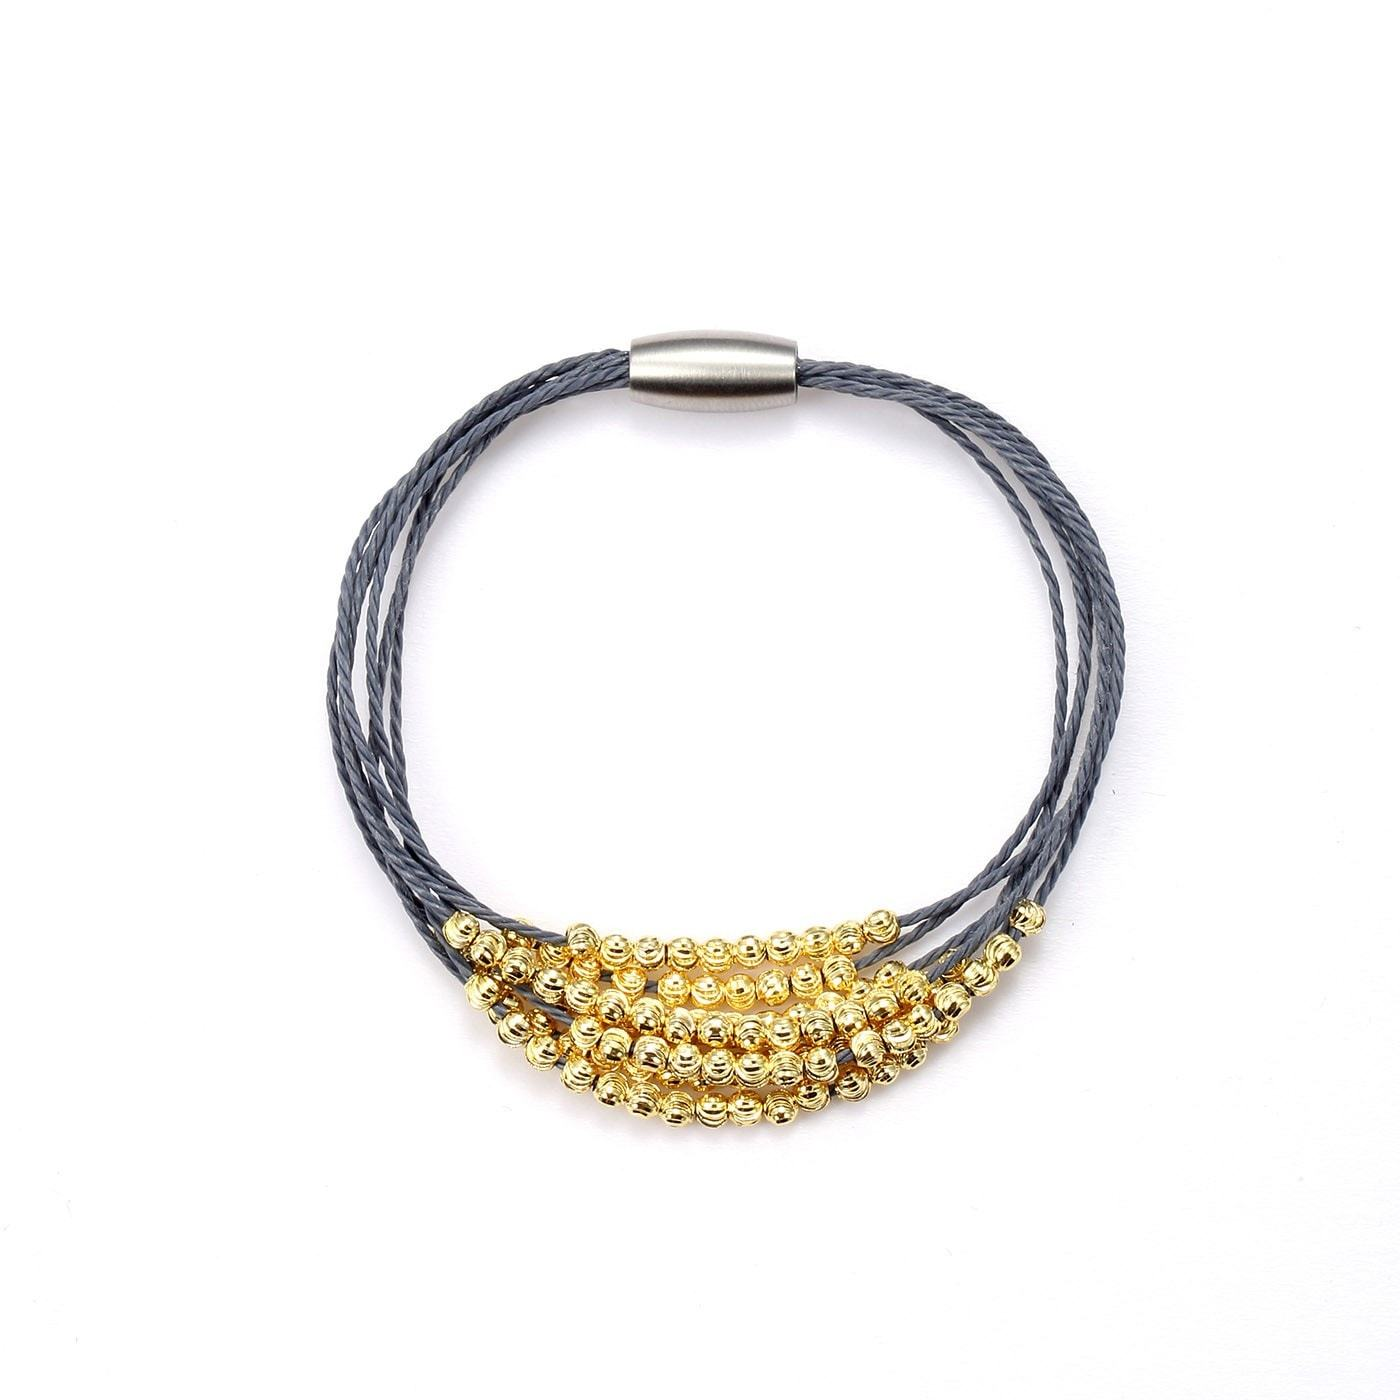 Luxe Shades of Grey & Gold Bracelet-Blinglane